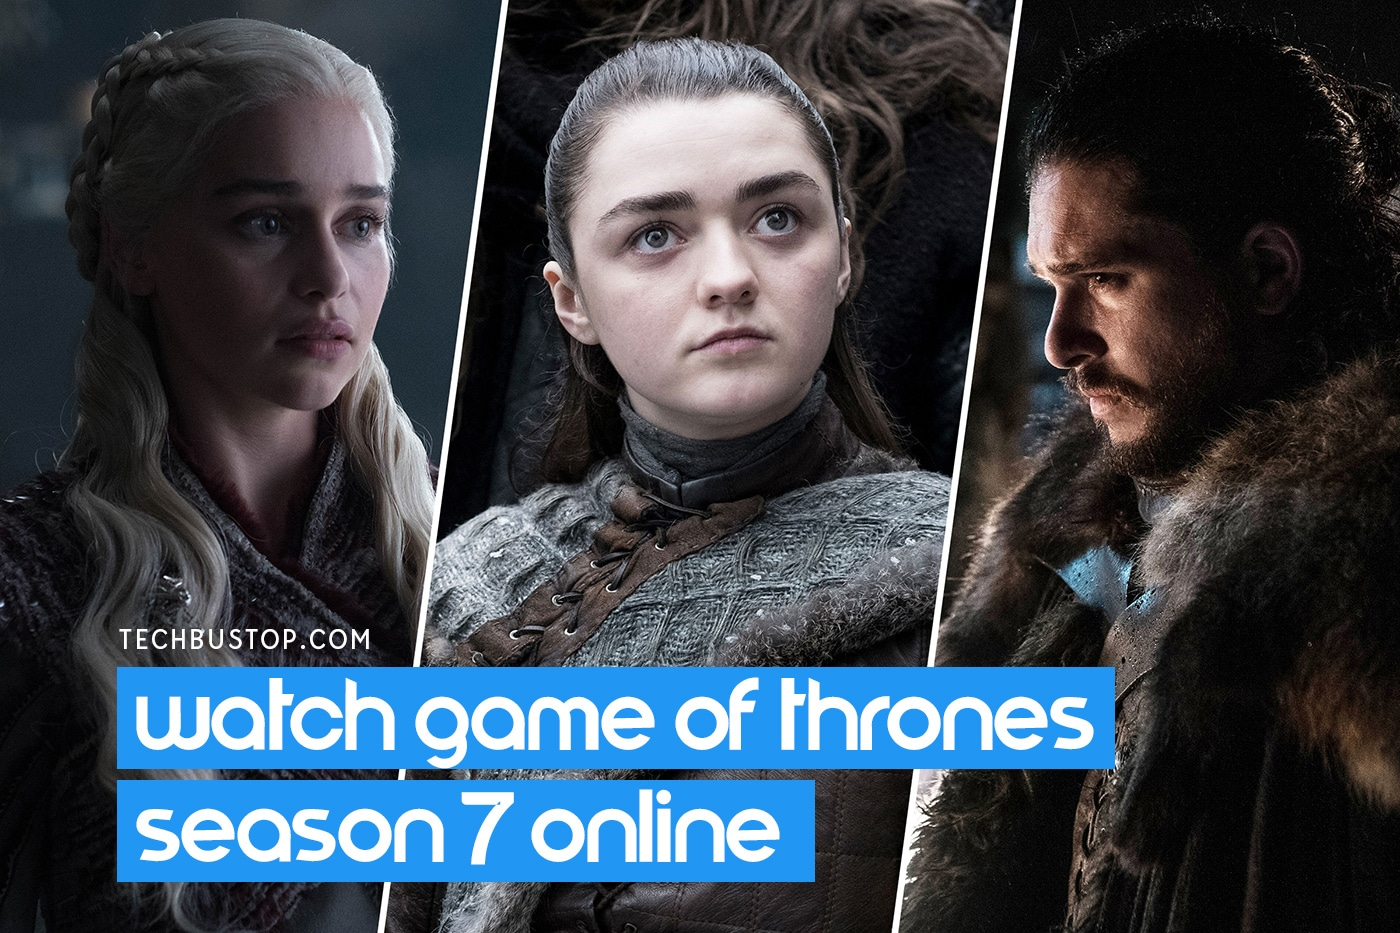 Watch Game Of Thrones Season 7 Complete Episodes Online